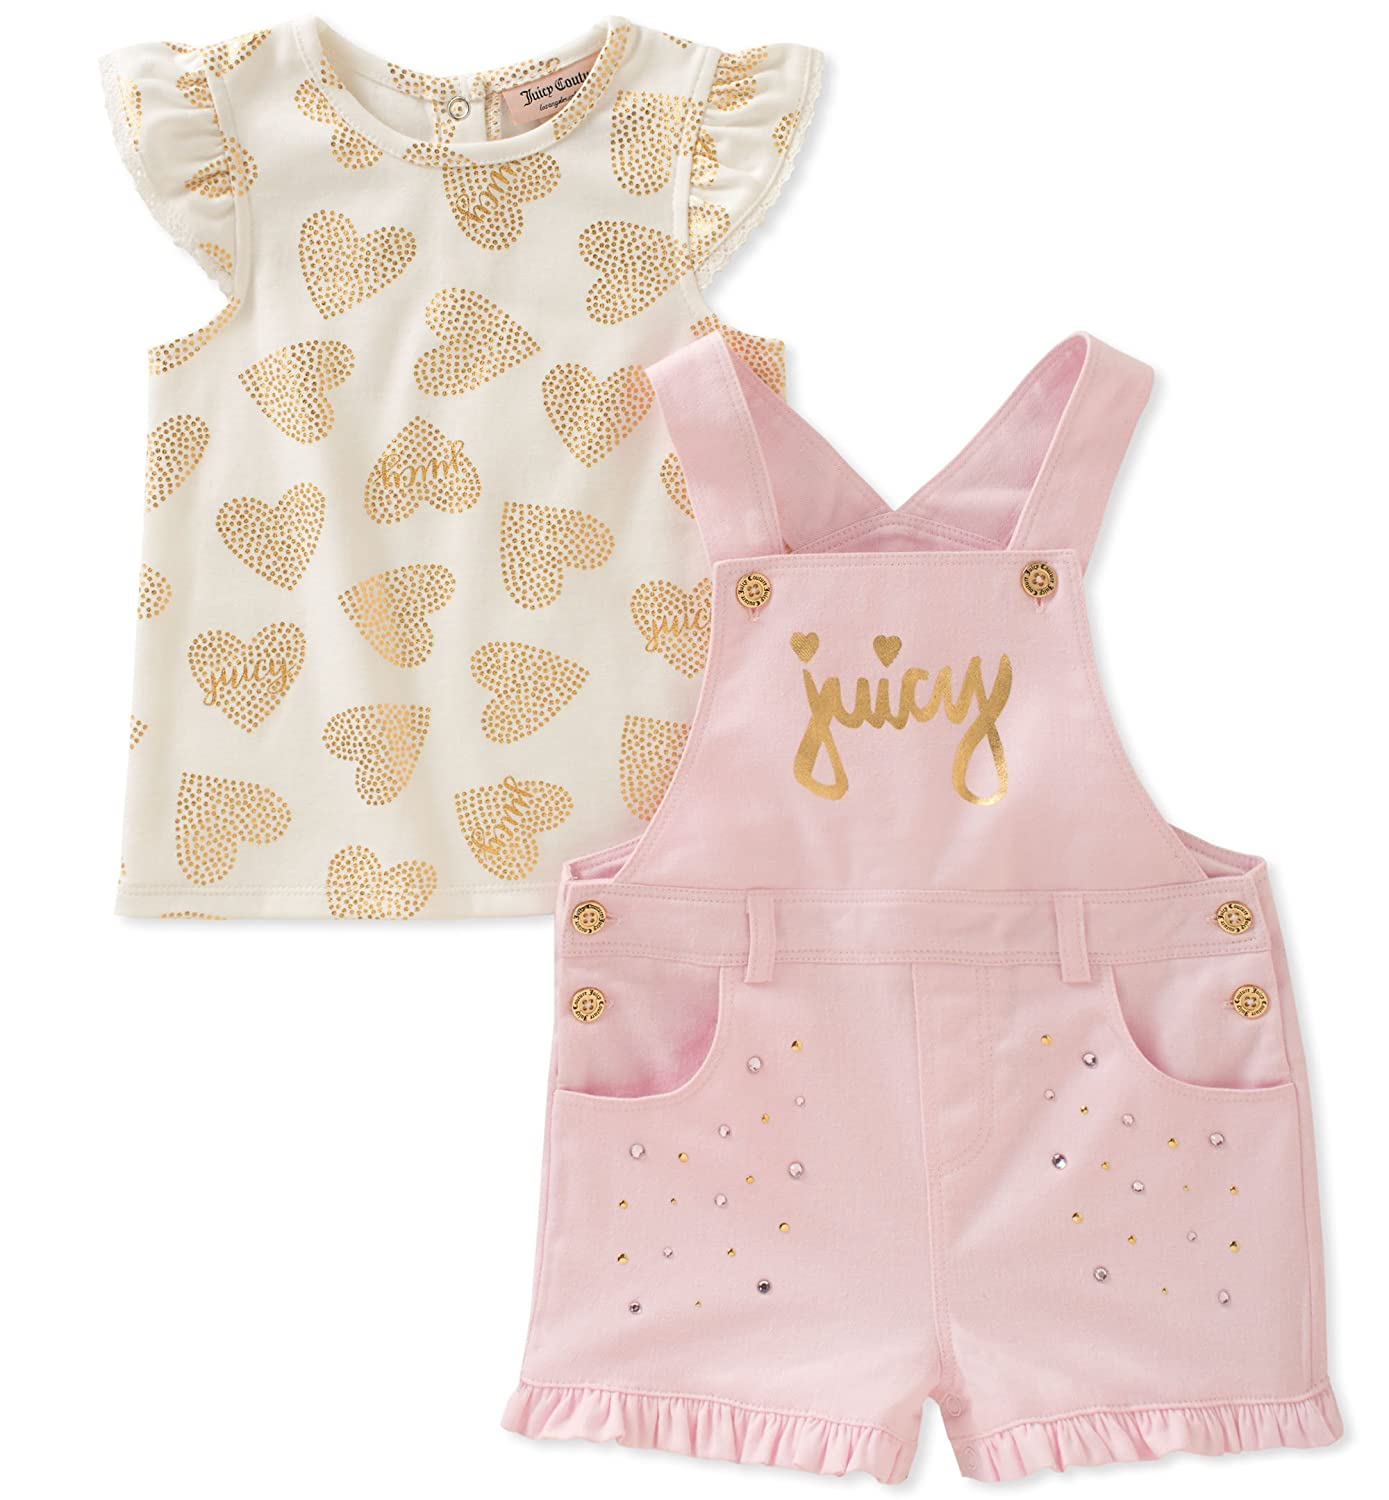 eafbd49b0 Amazon.com  Juicy Couture Baby Girls Shortall Set  Clothing